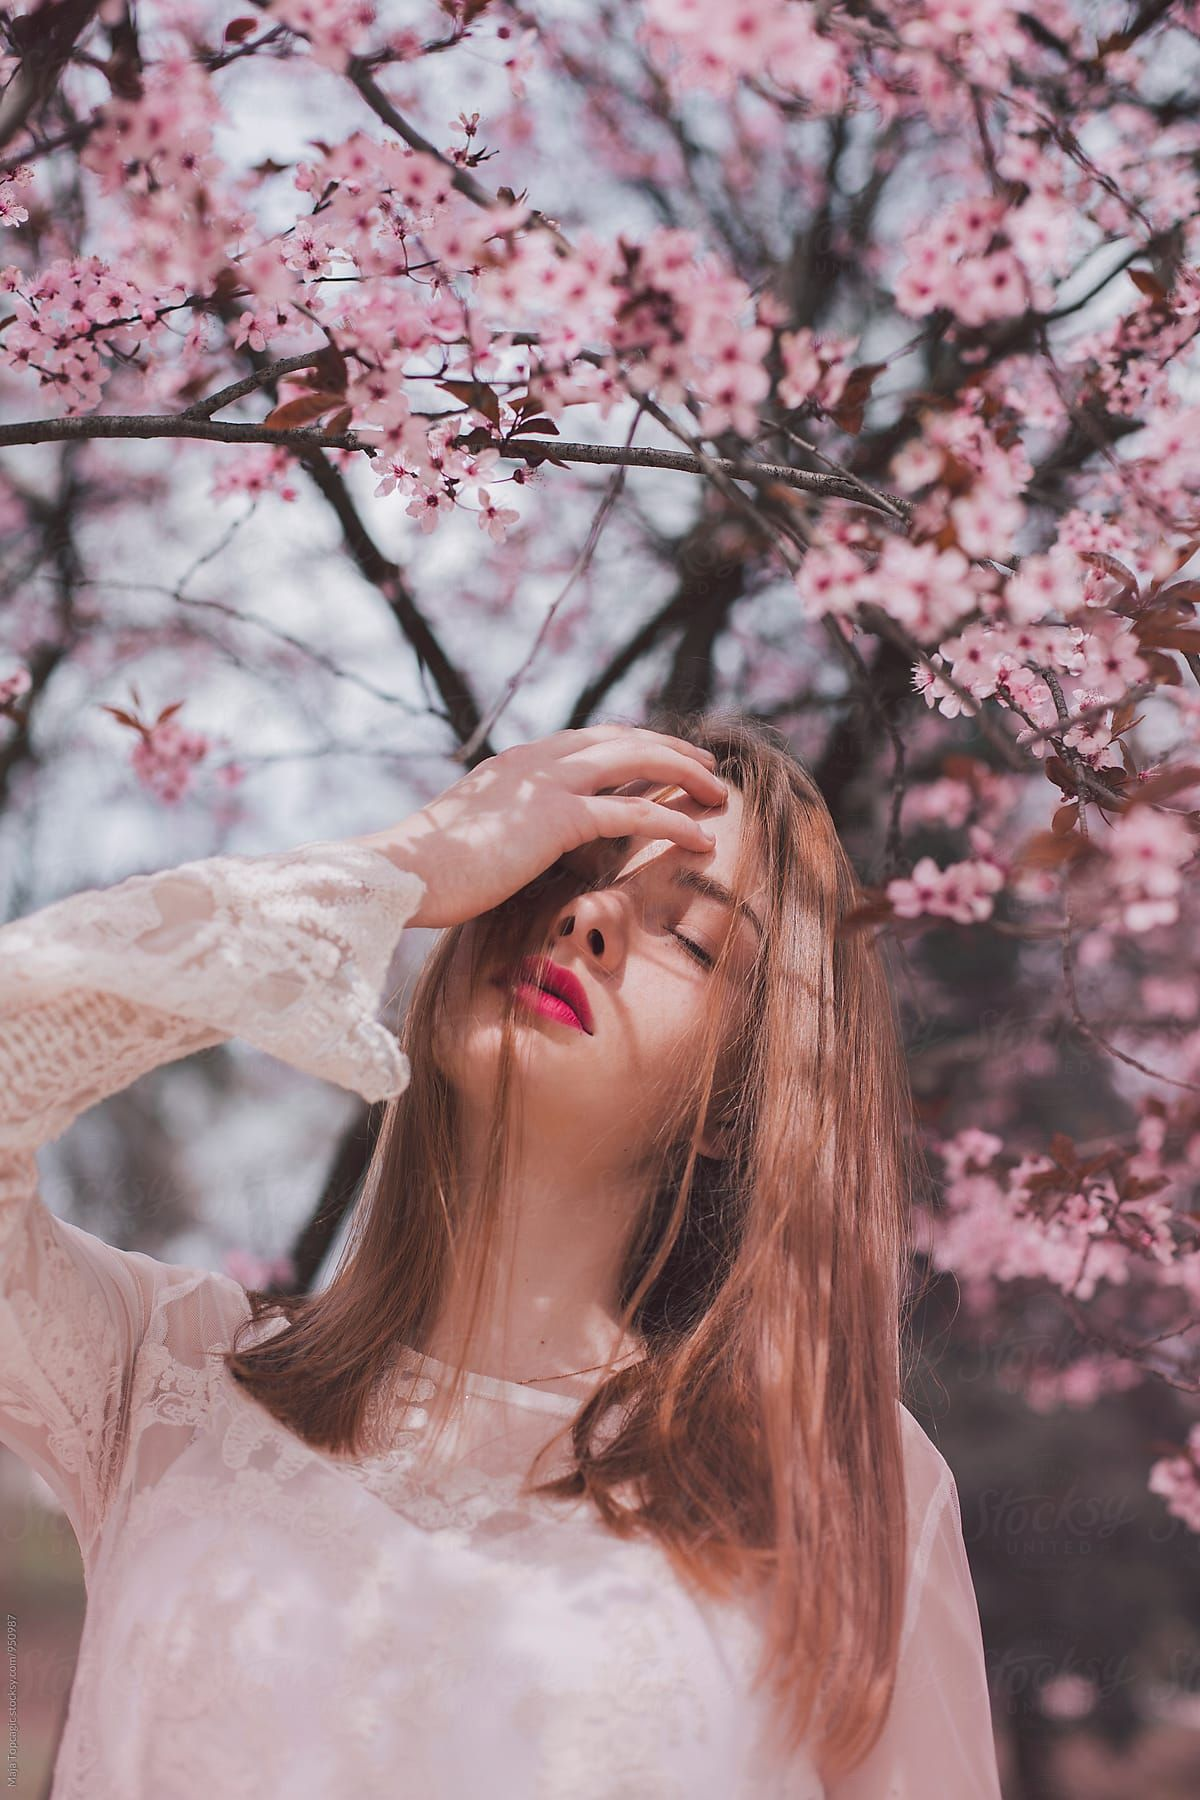 Portrait Of A Freckled Woman In Pink Blossom Tree Stocksy United Portrait Photography Poses Spring Photoshoot Photography Poses Women